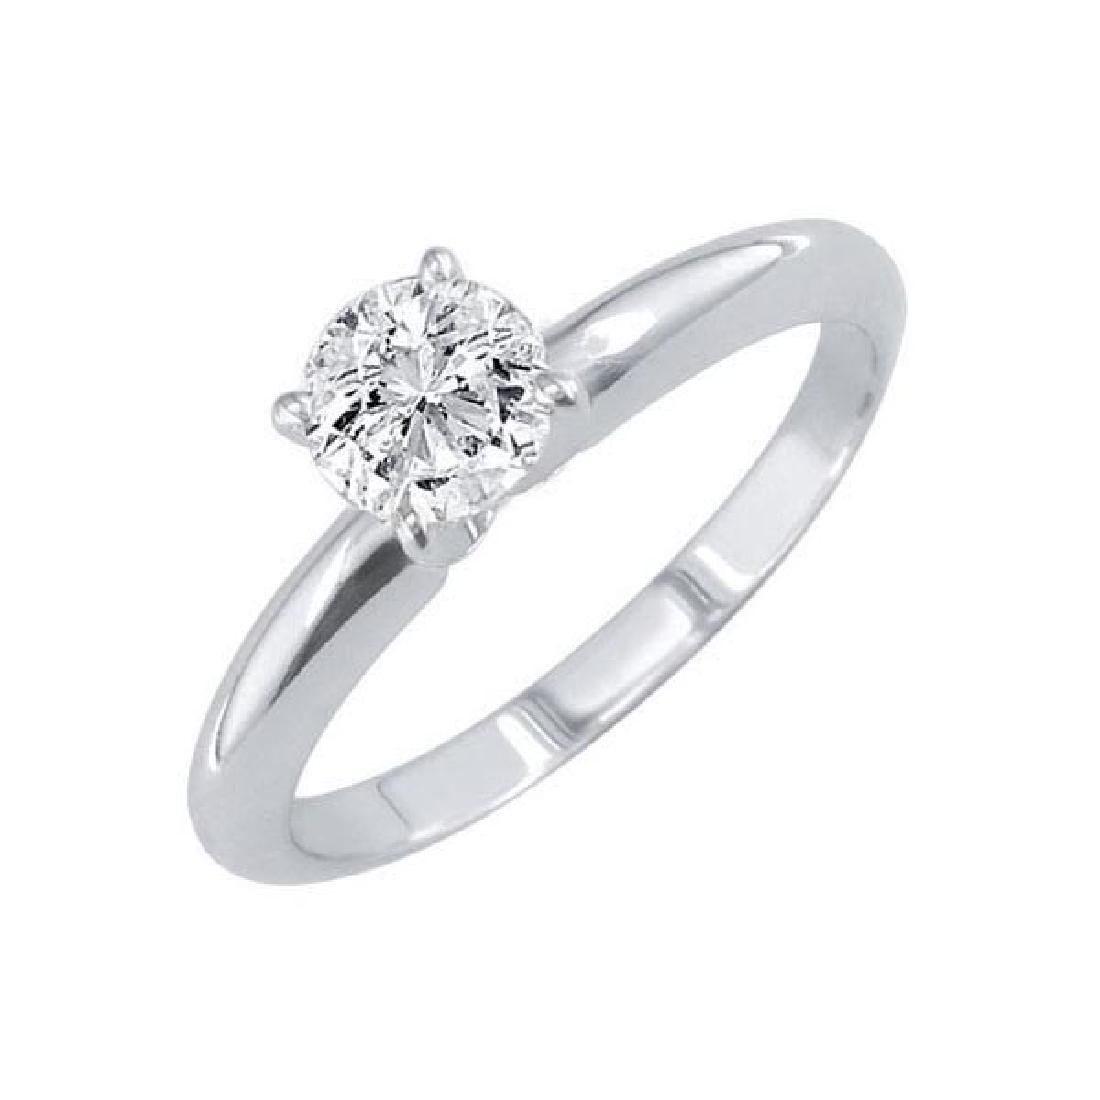 Certified 0.76 CTW Round Diamond Solitaire 14k Ring F/S